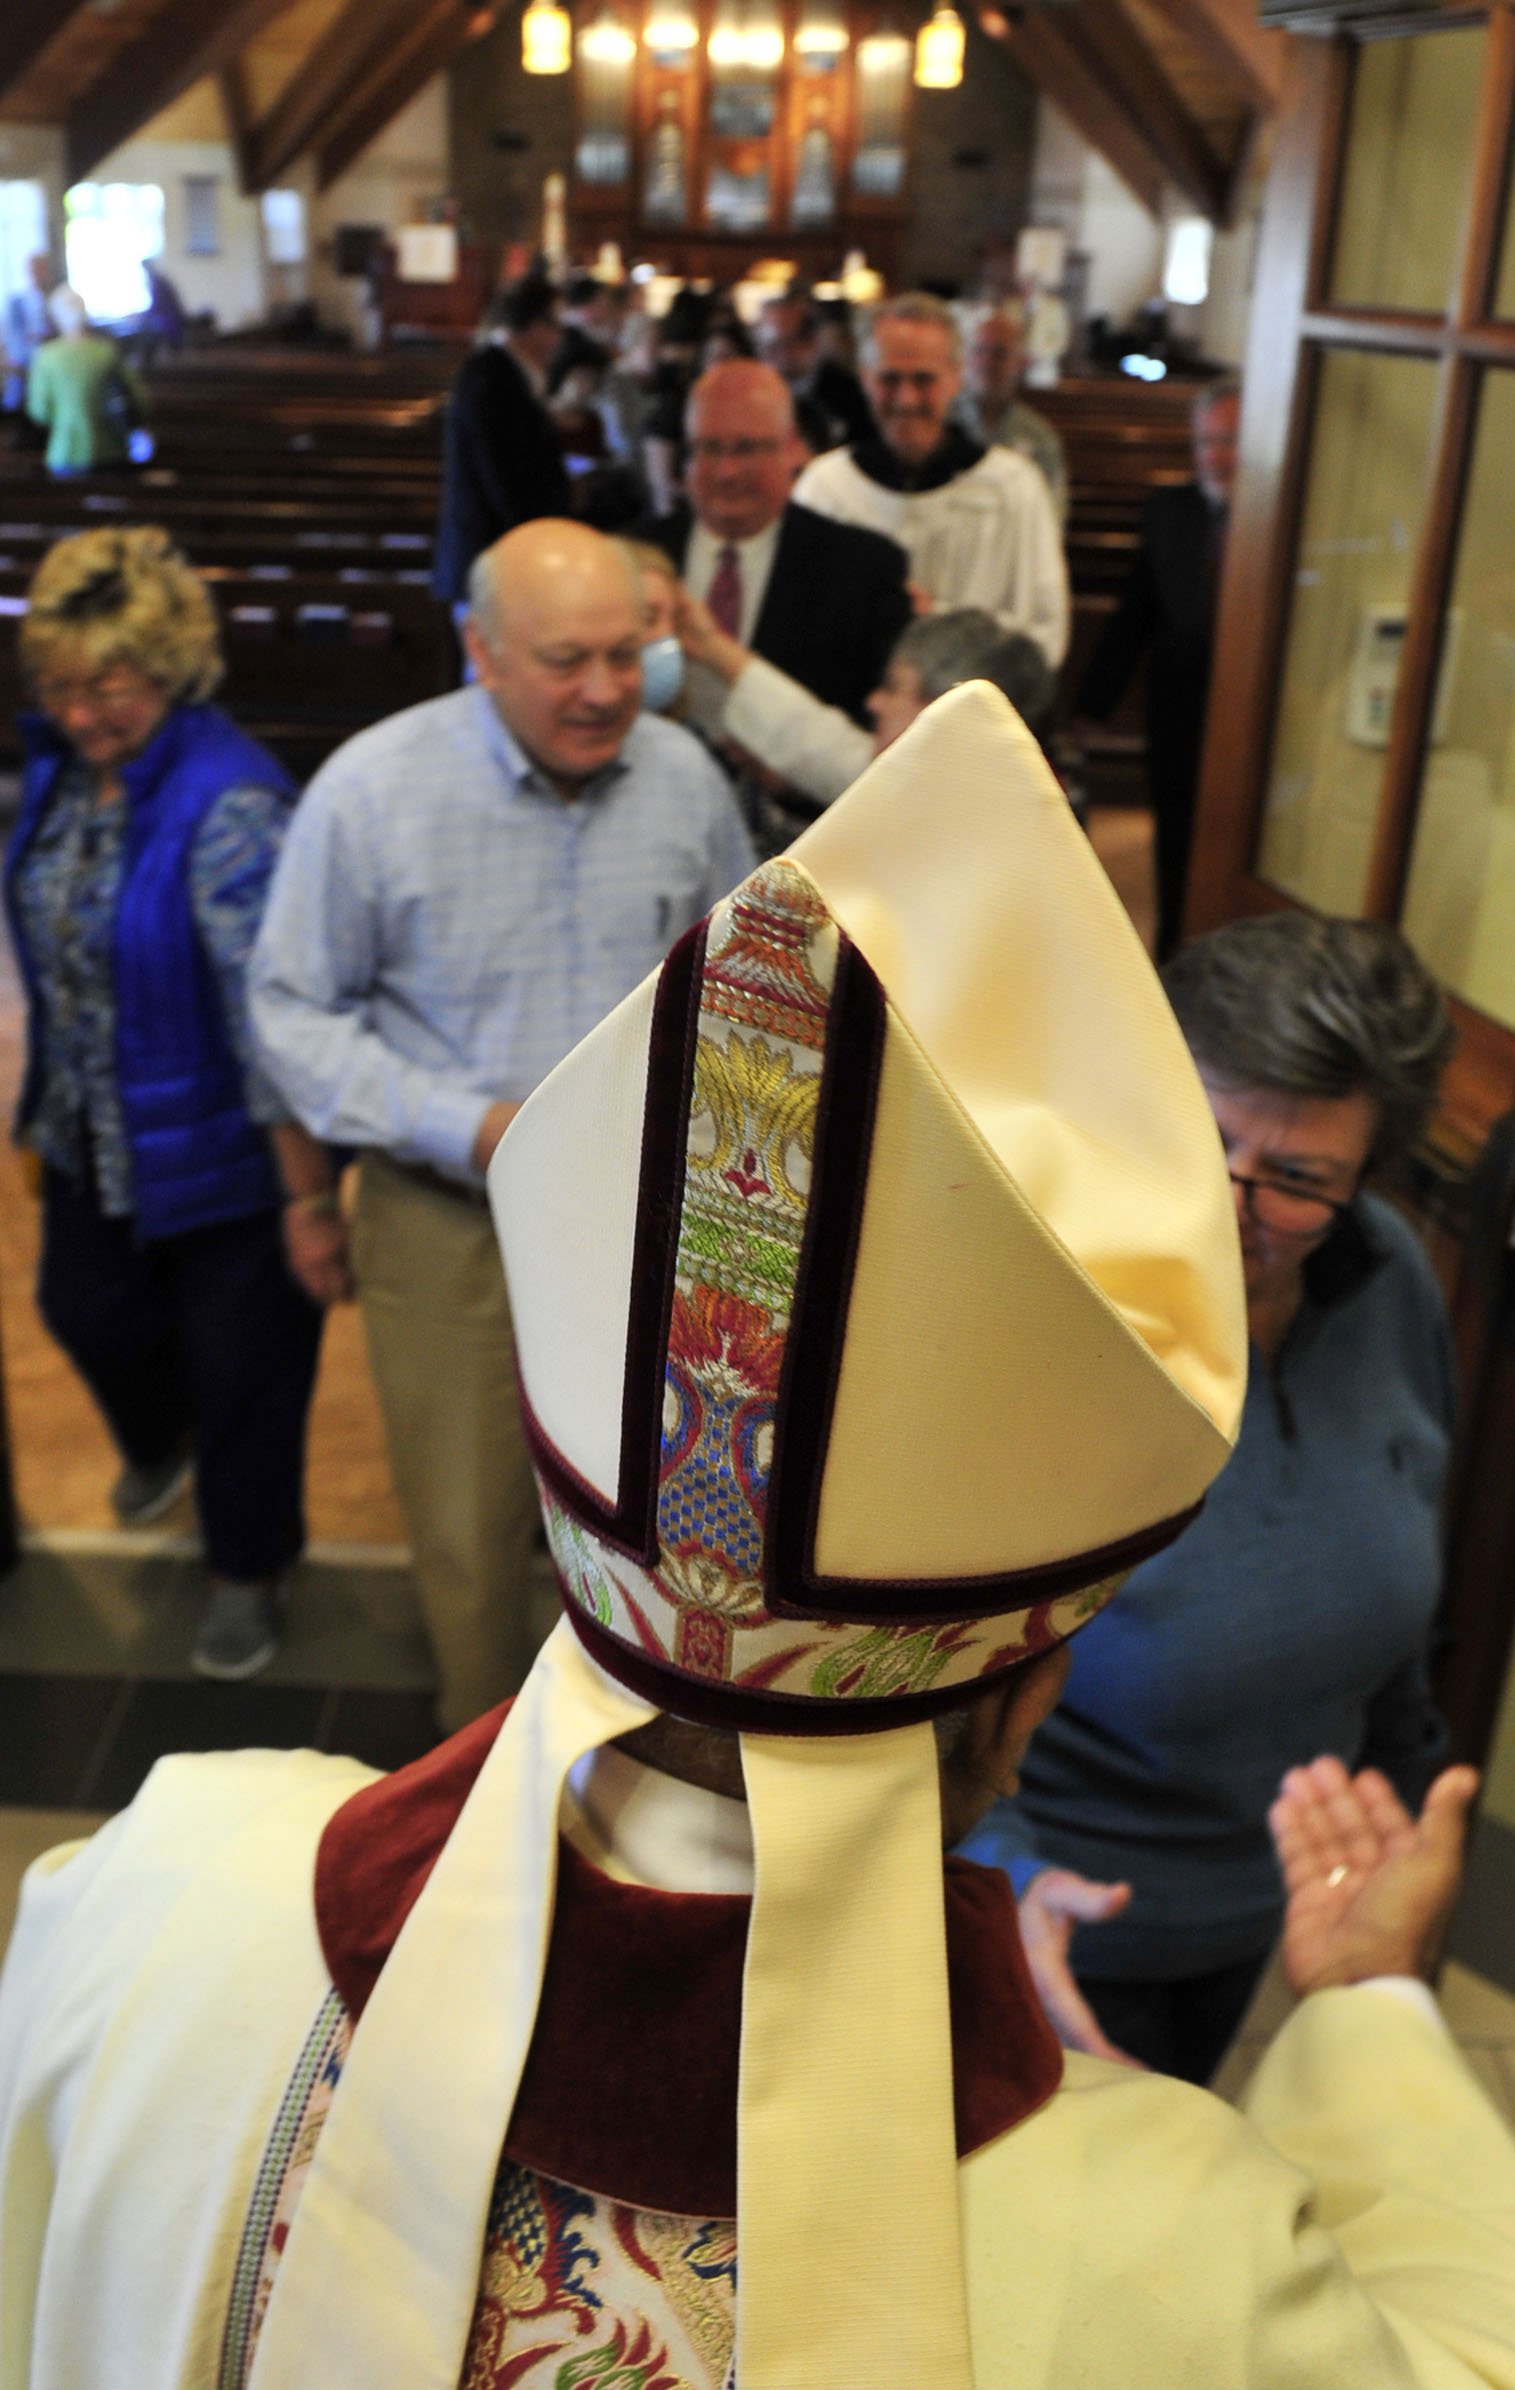 Bishop Visits St. Stephen's